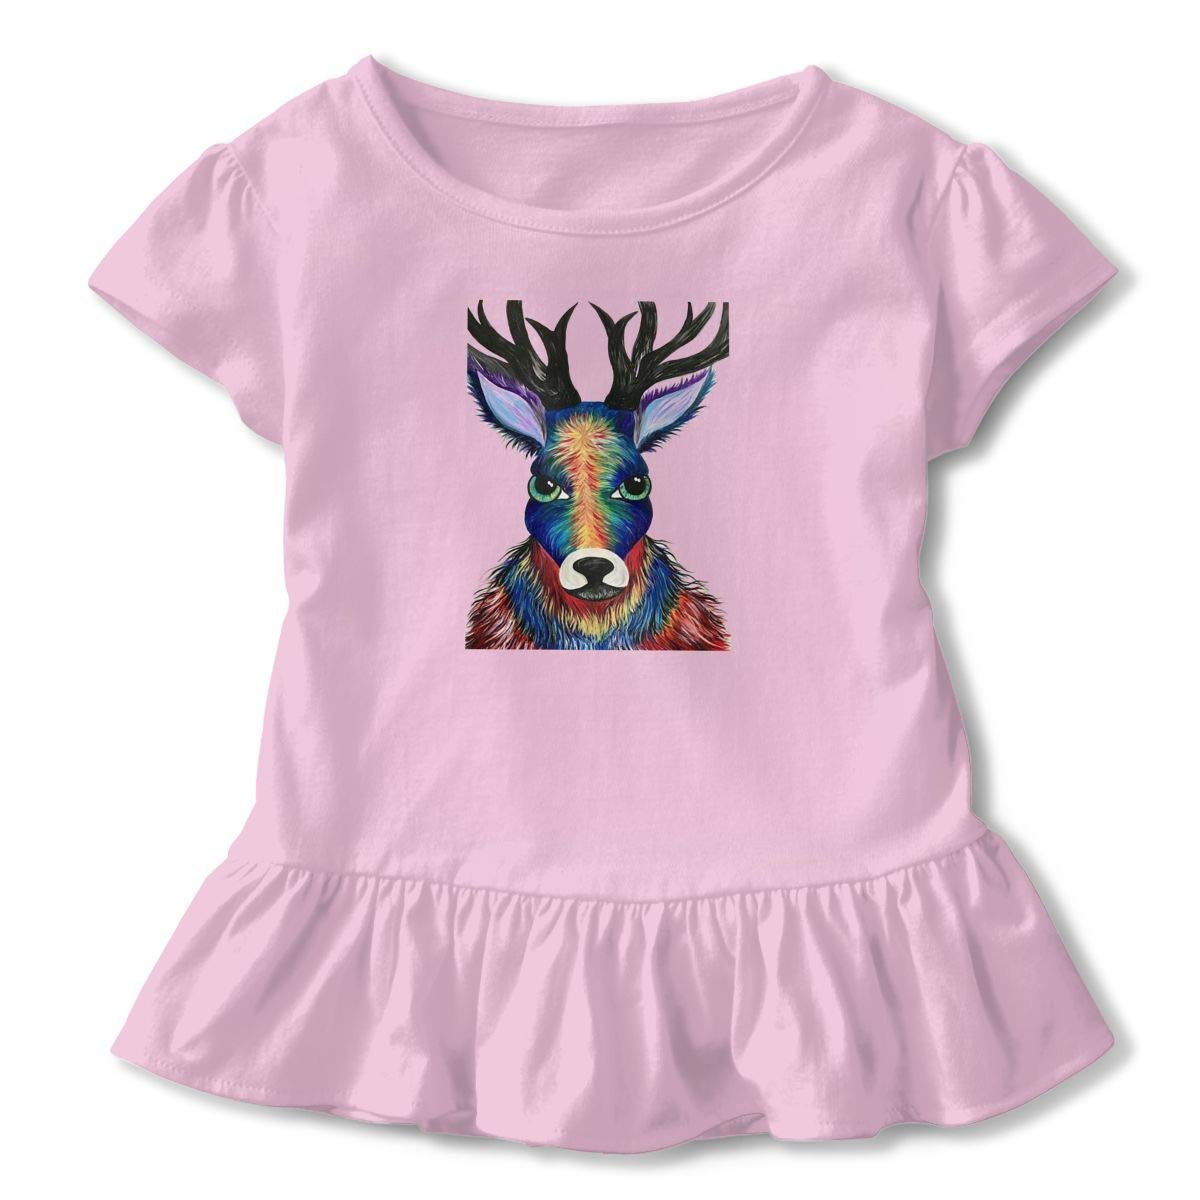 Colorful-Deer Toddler Baby Girls Short Sleeve ONeck Basic Shirts with Printed Designs in Front for School Birthday Party Gifts Ruffles Top Pink